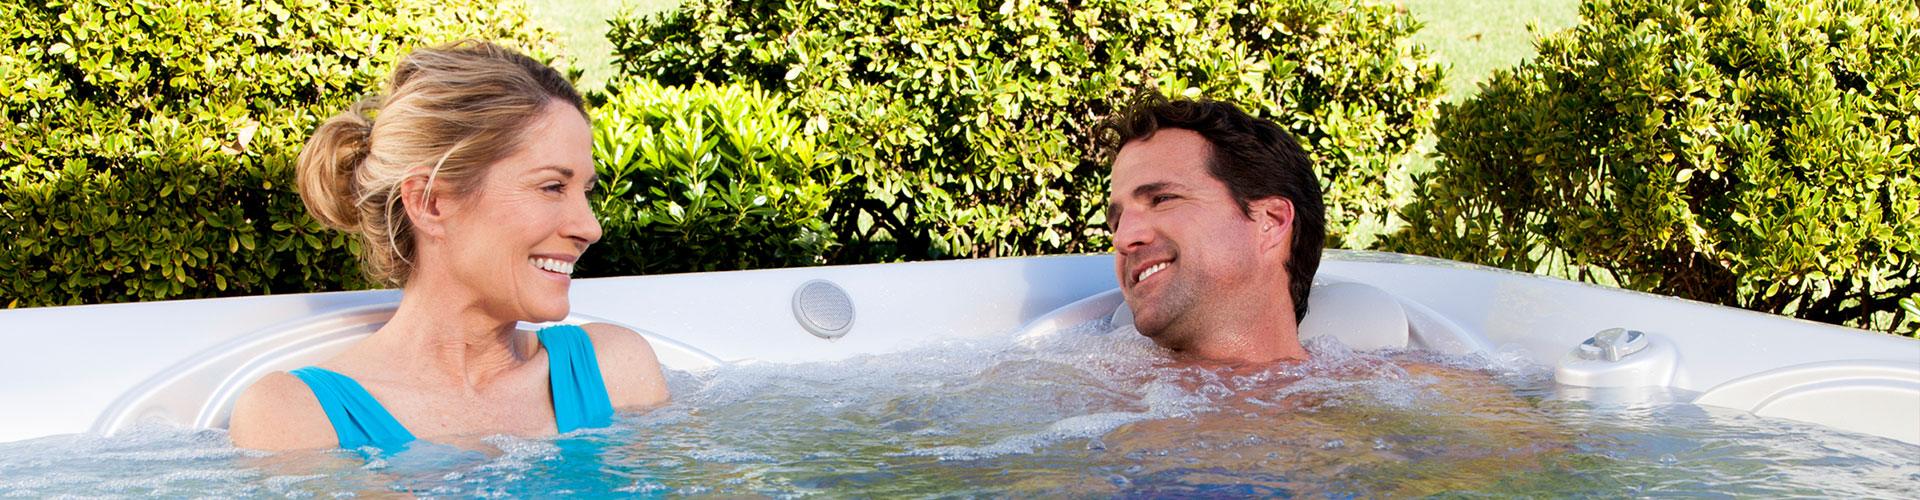 How to Claim Your Hot Tub As A Medical Expense Deduction on Your Tax Return